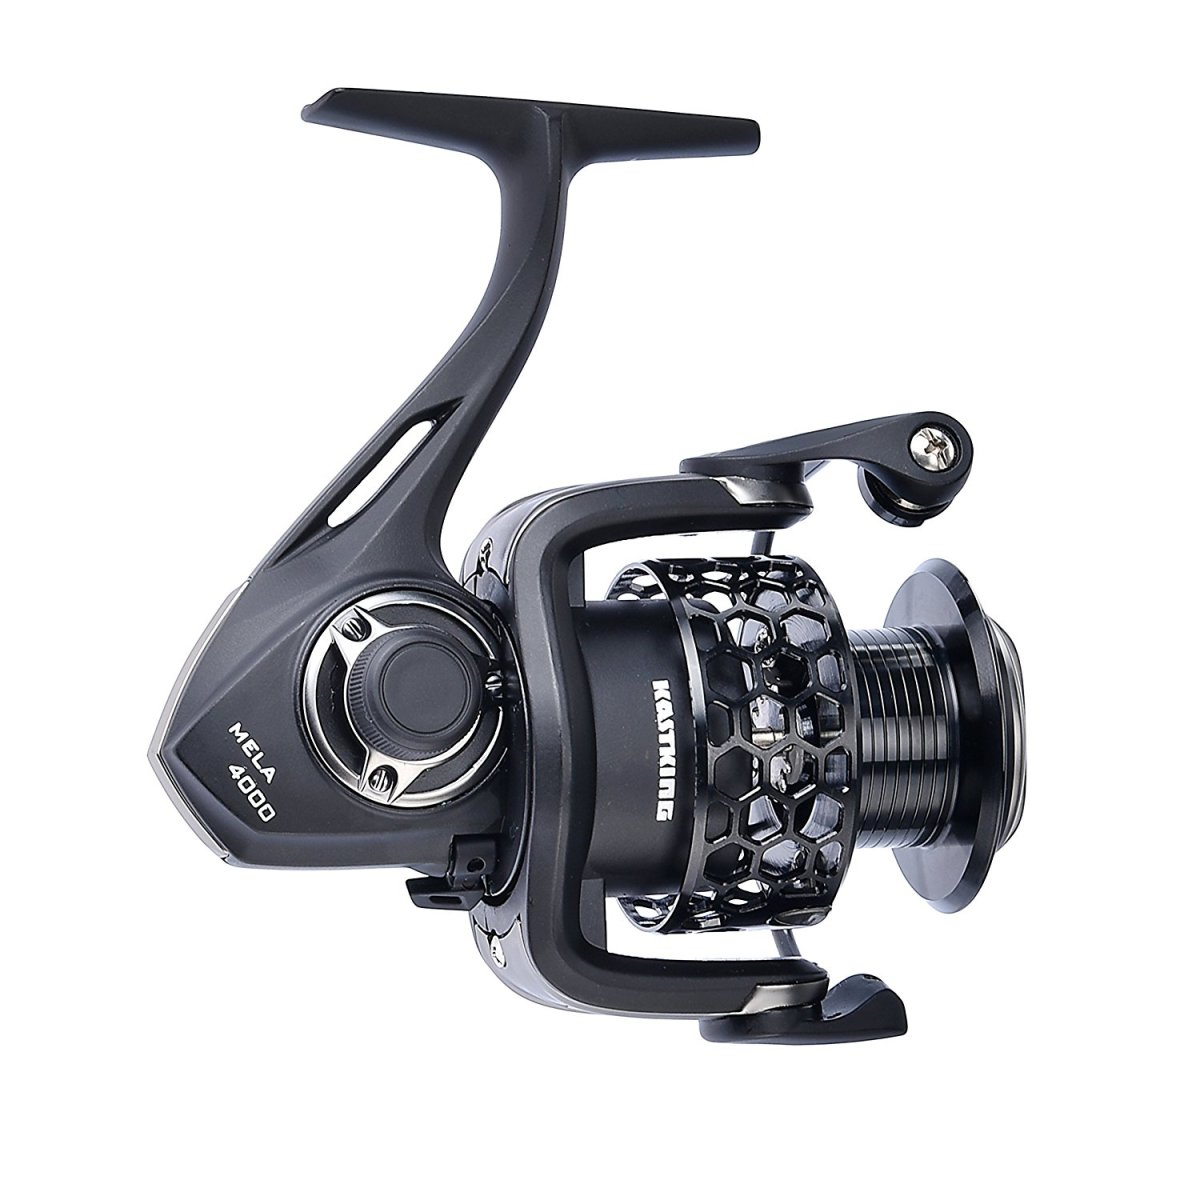 Top fishing reels fishing reel review and buying guide for Best fishing reels 2017